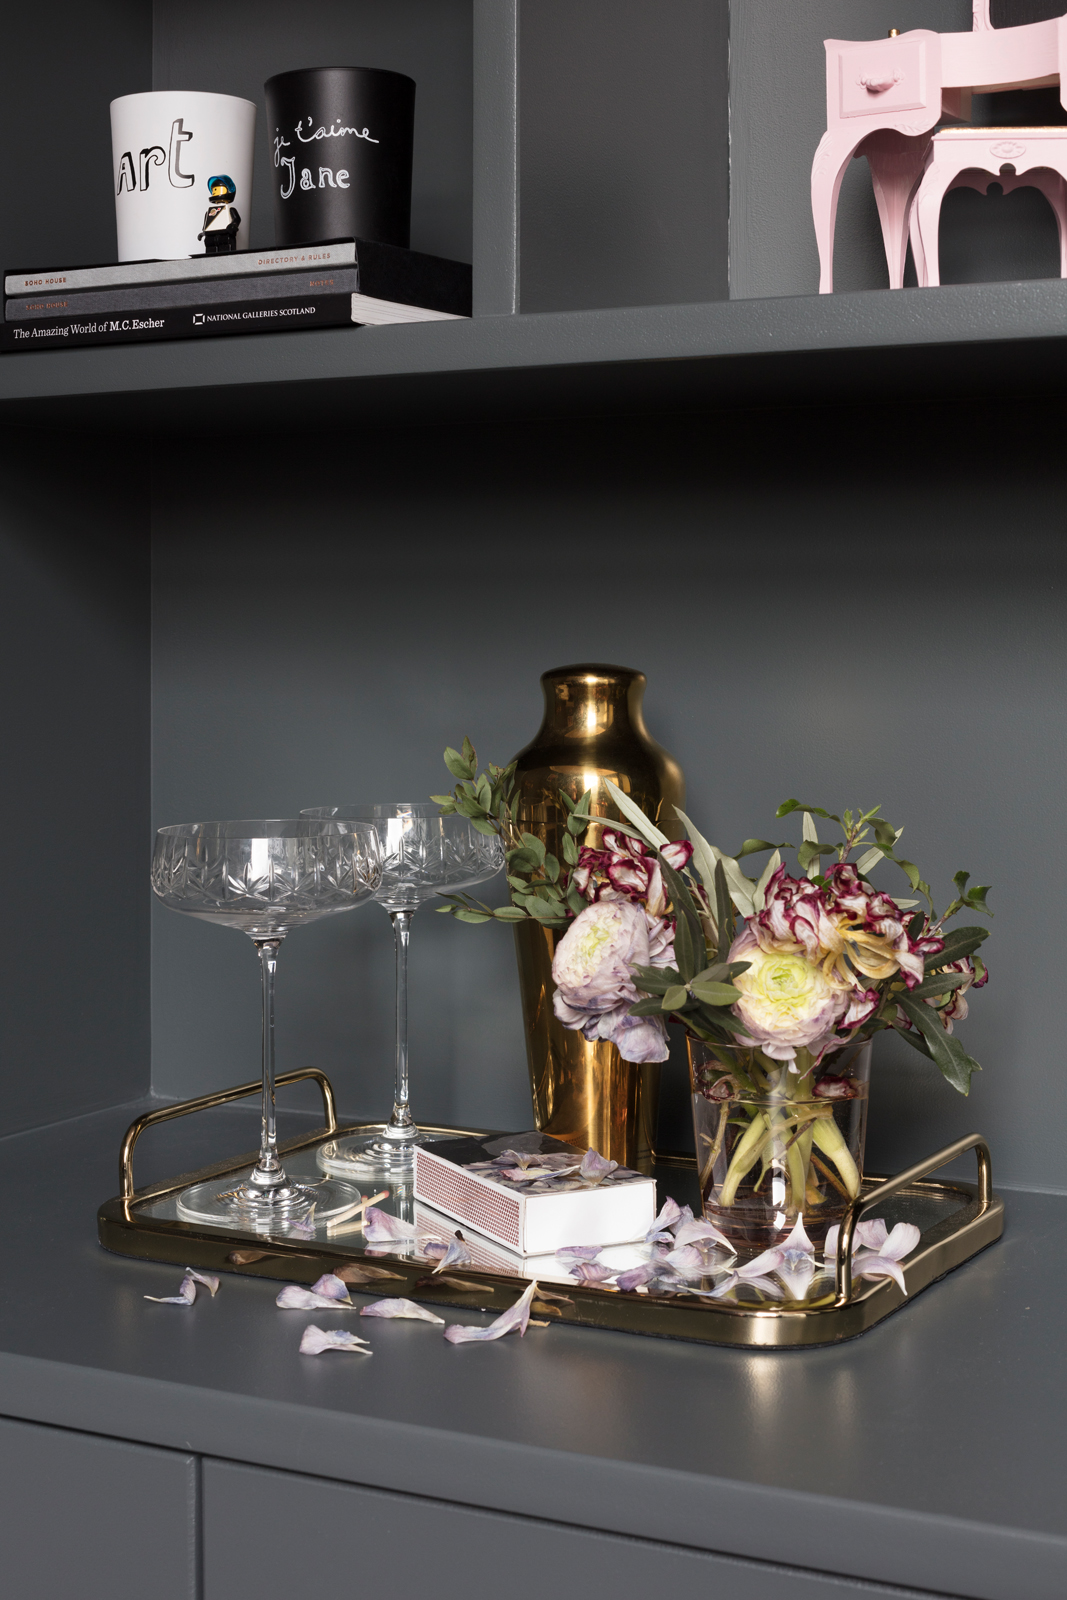 Mirrored drinks tray from Marks & Spencer